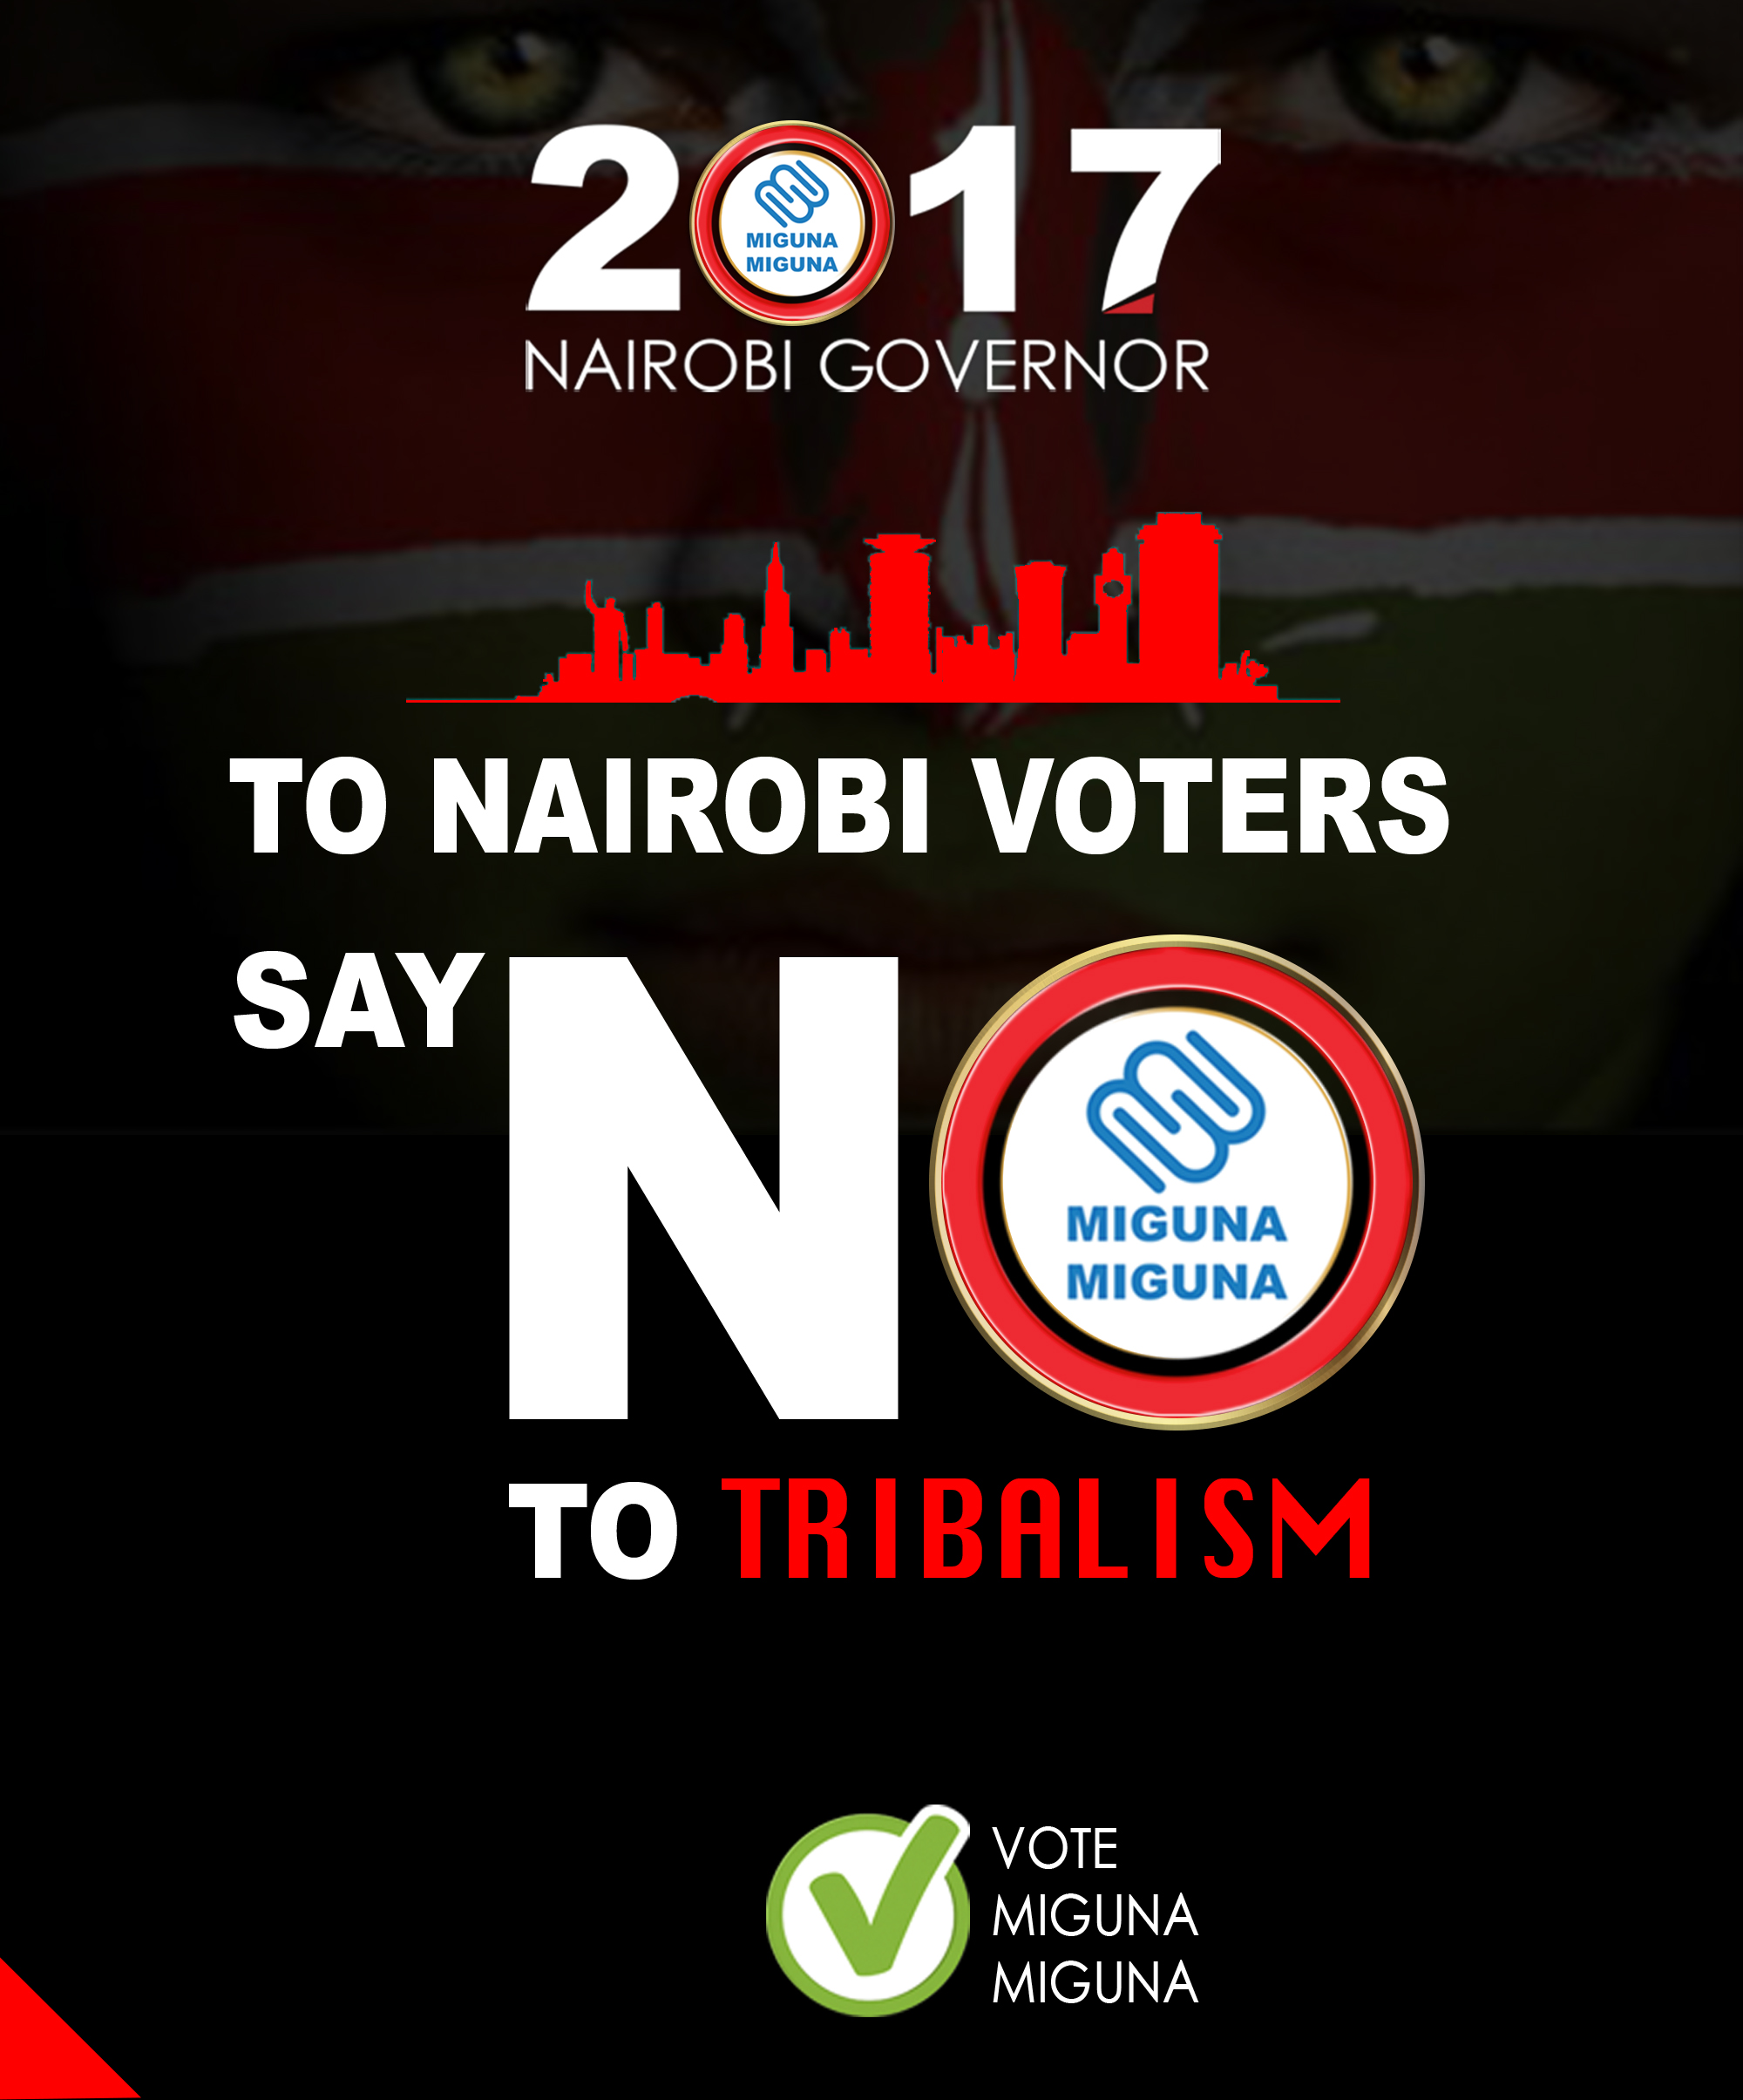 Say NO to tribalism.